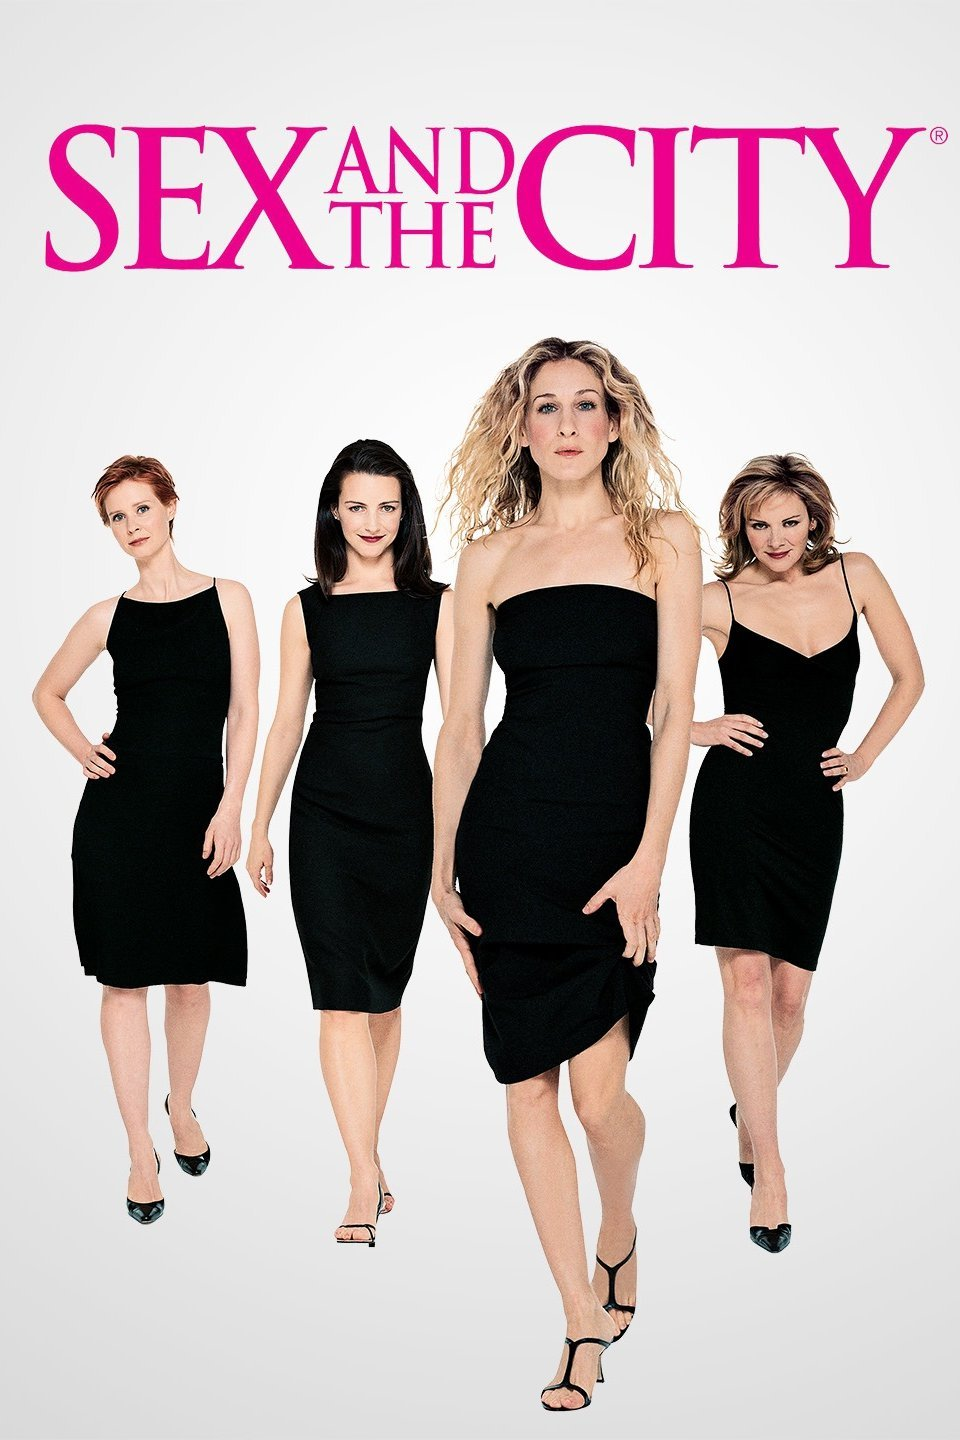 How many season of sex and the city